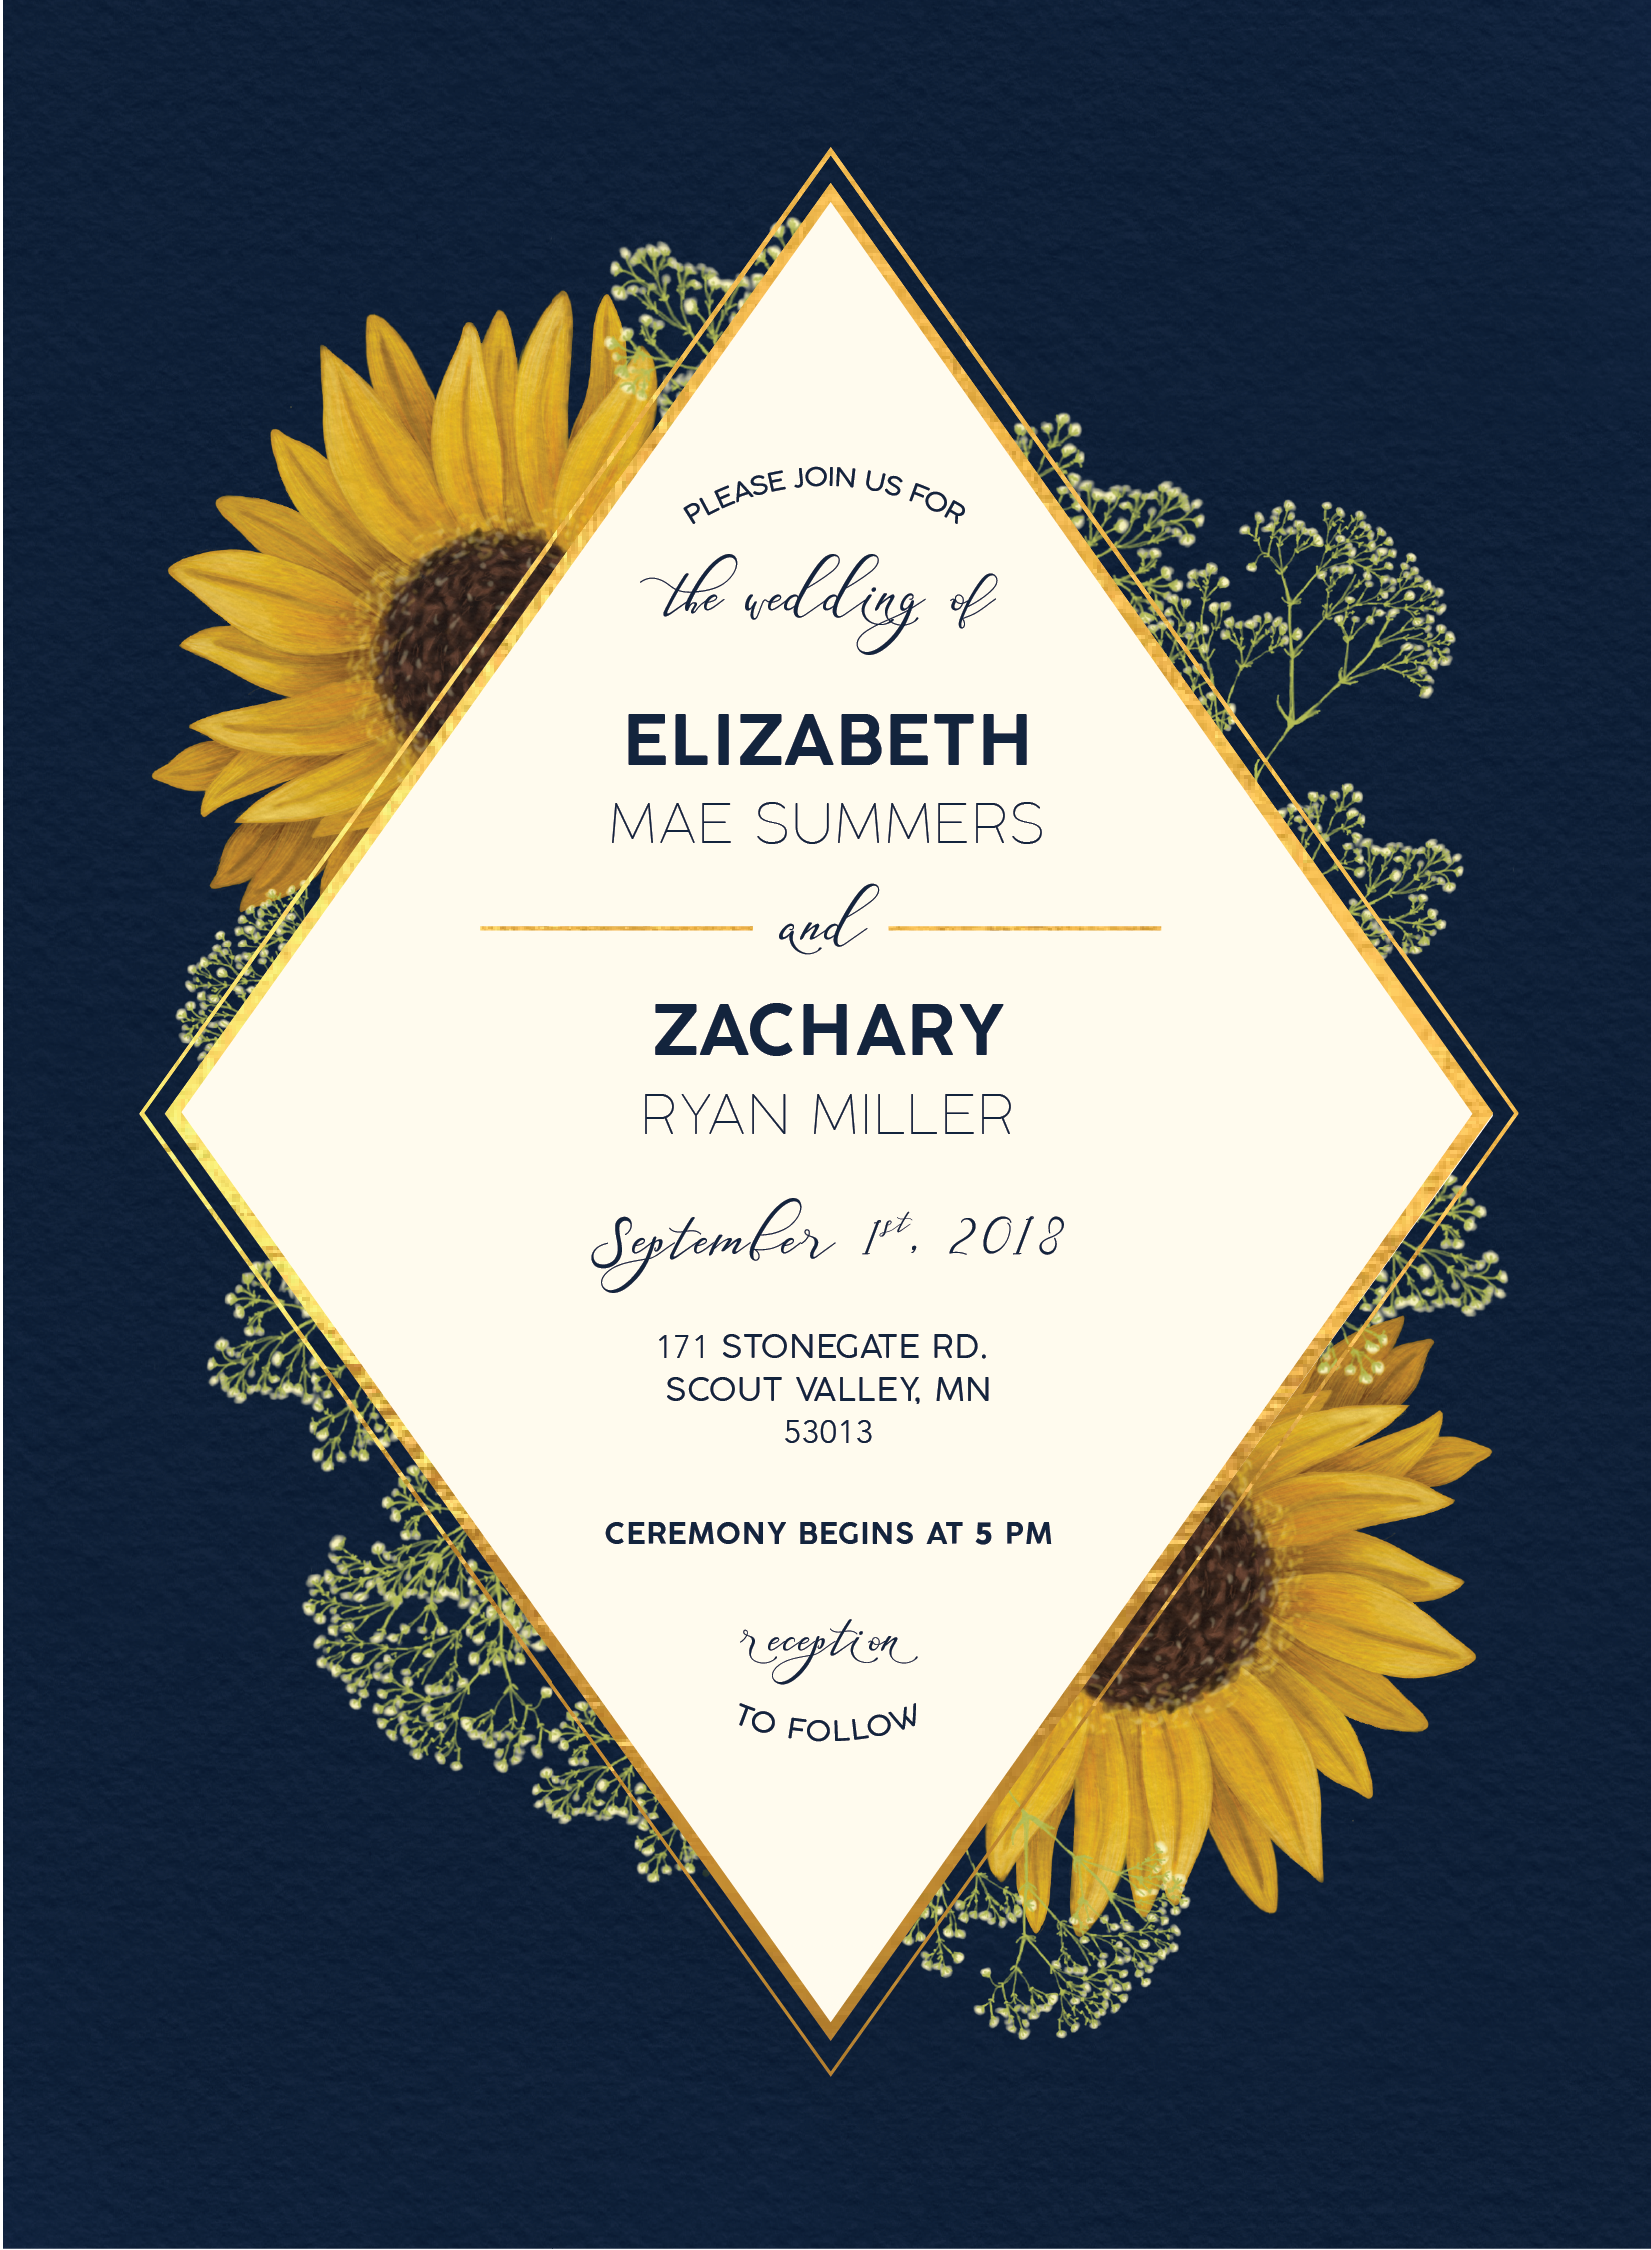 Beth and Zac wedding invitations-01.png